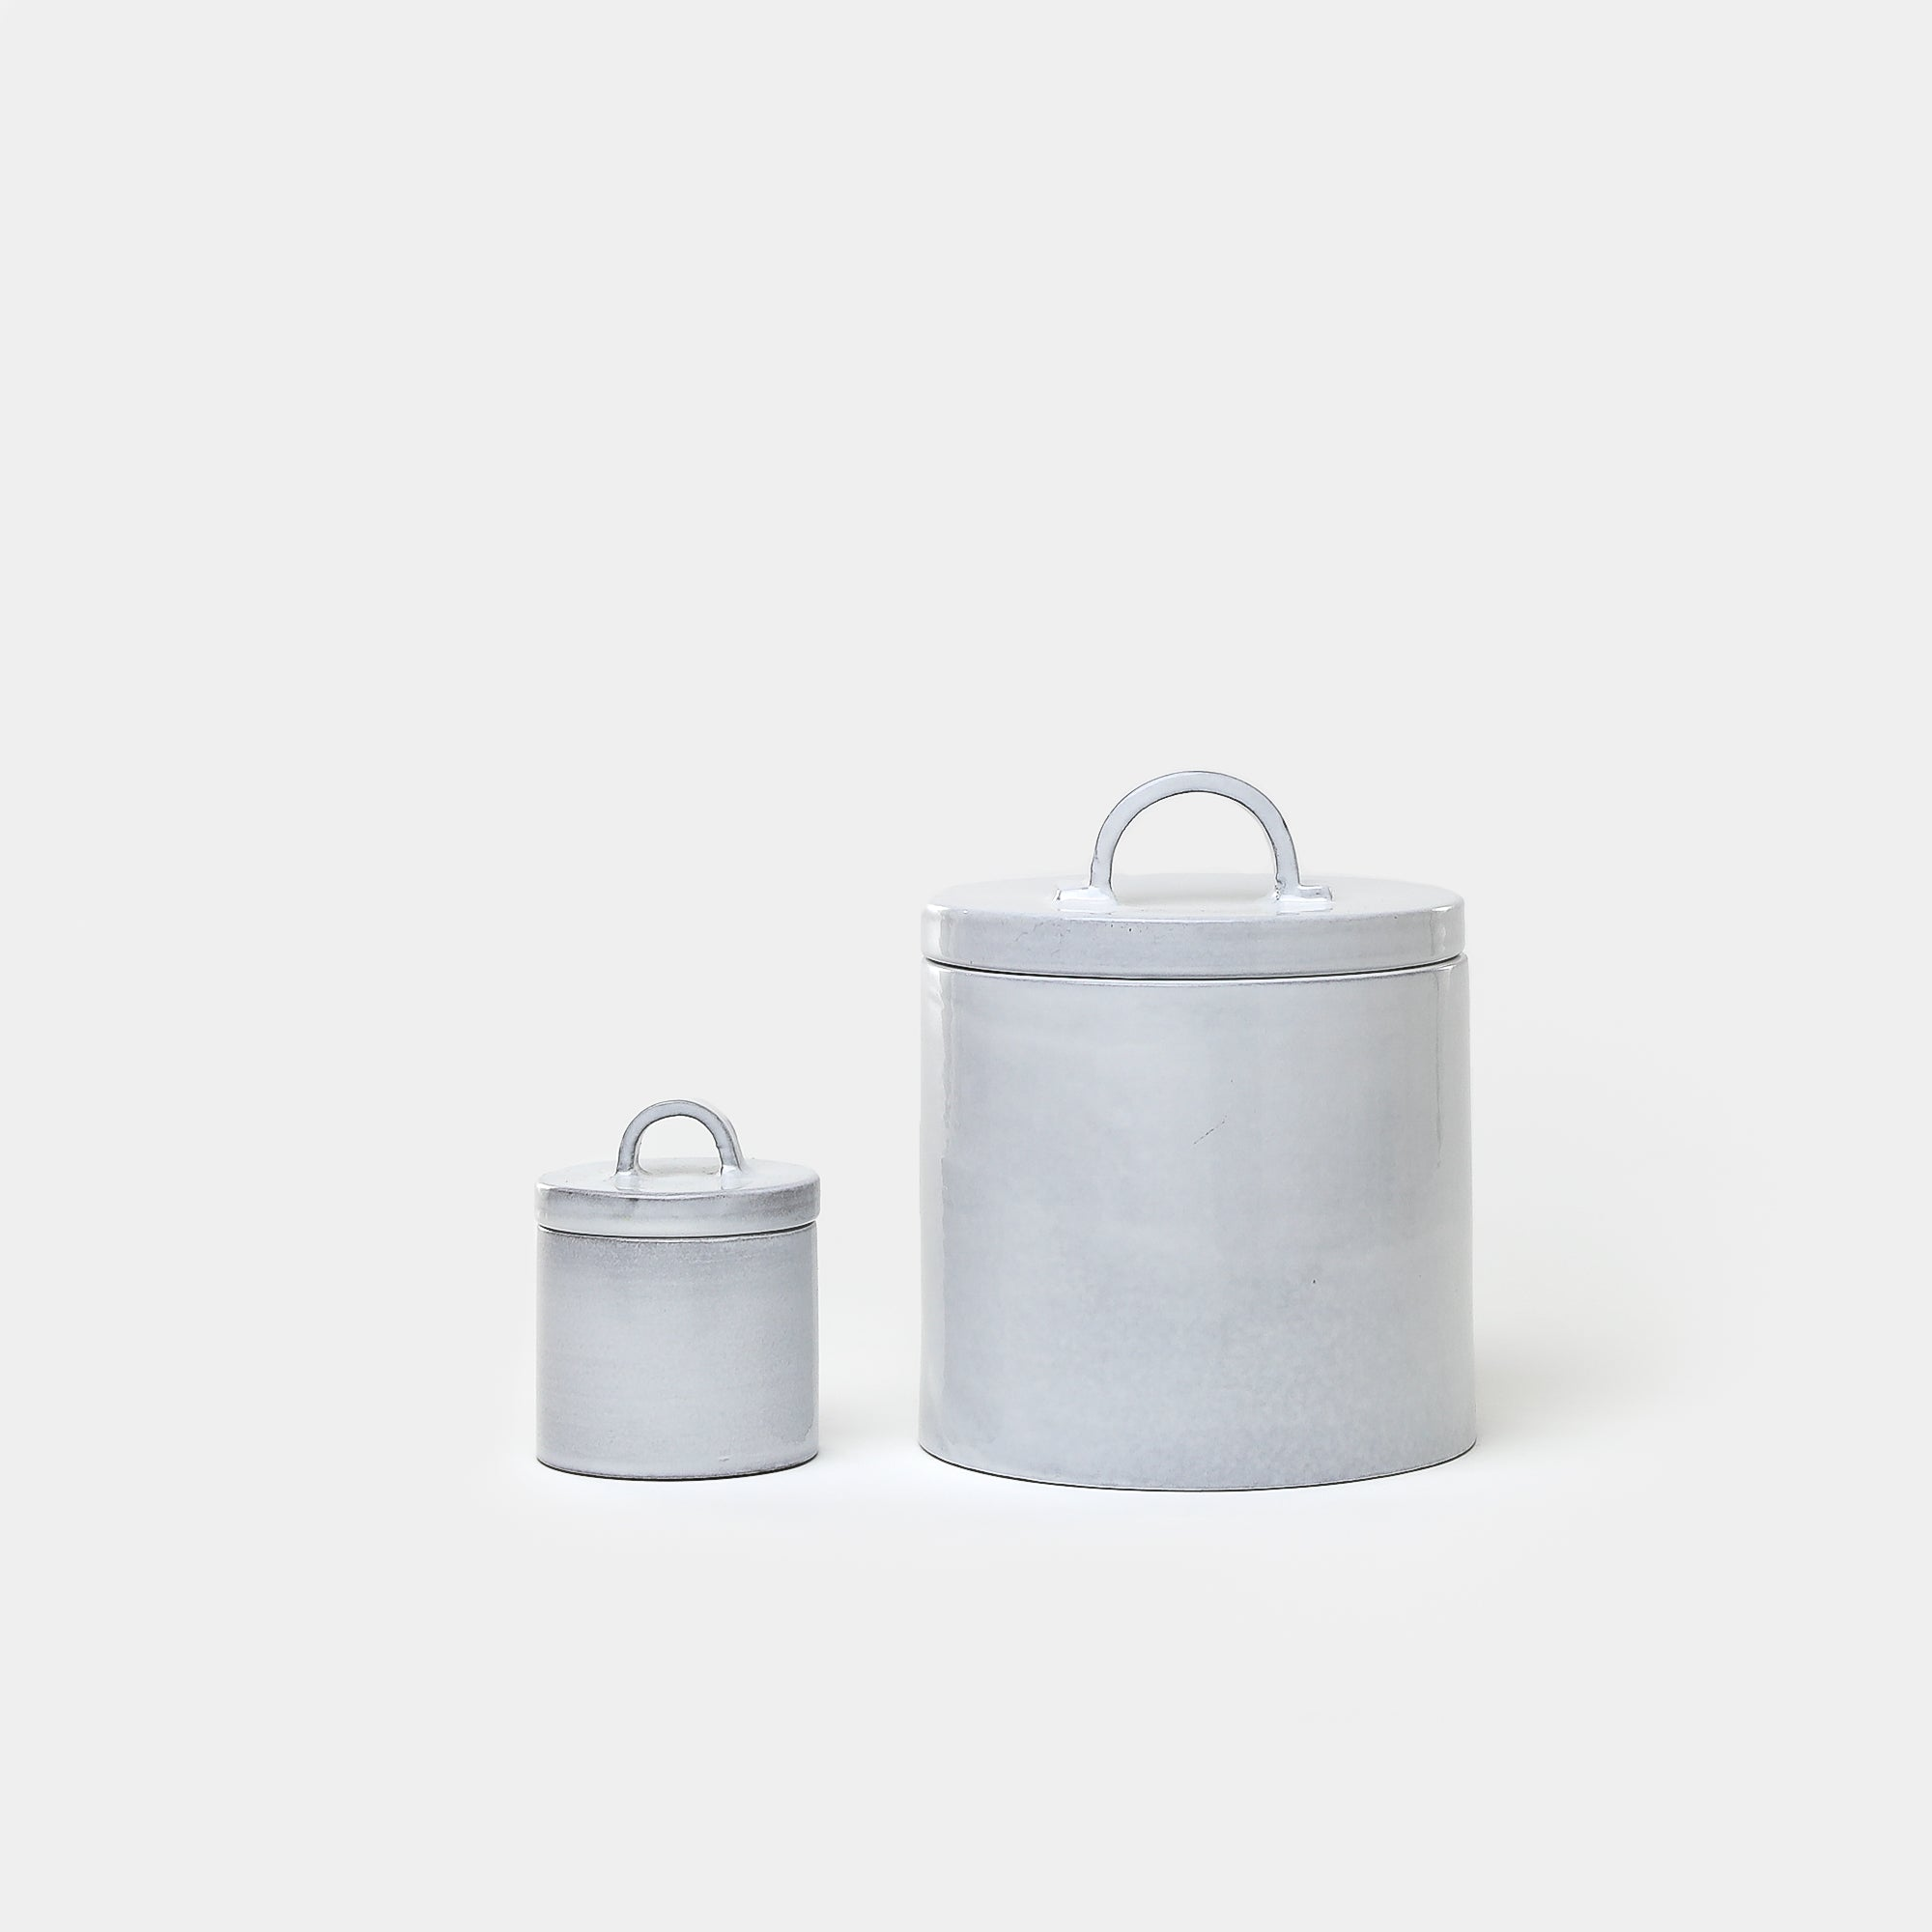 Assisi Medium Canister in Bianco